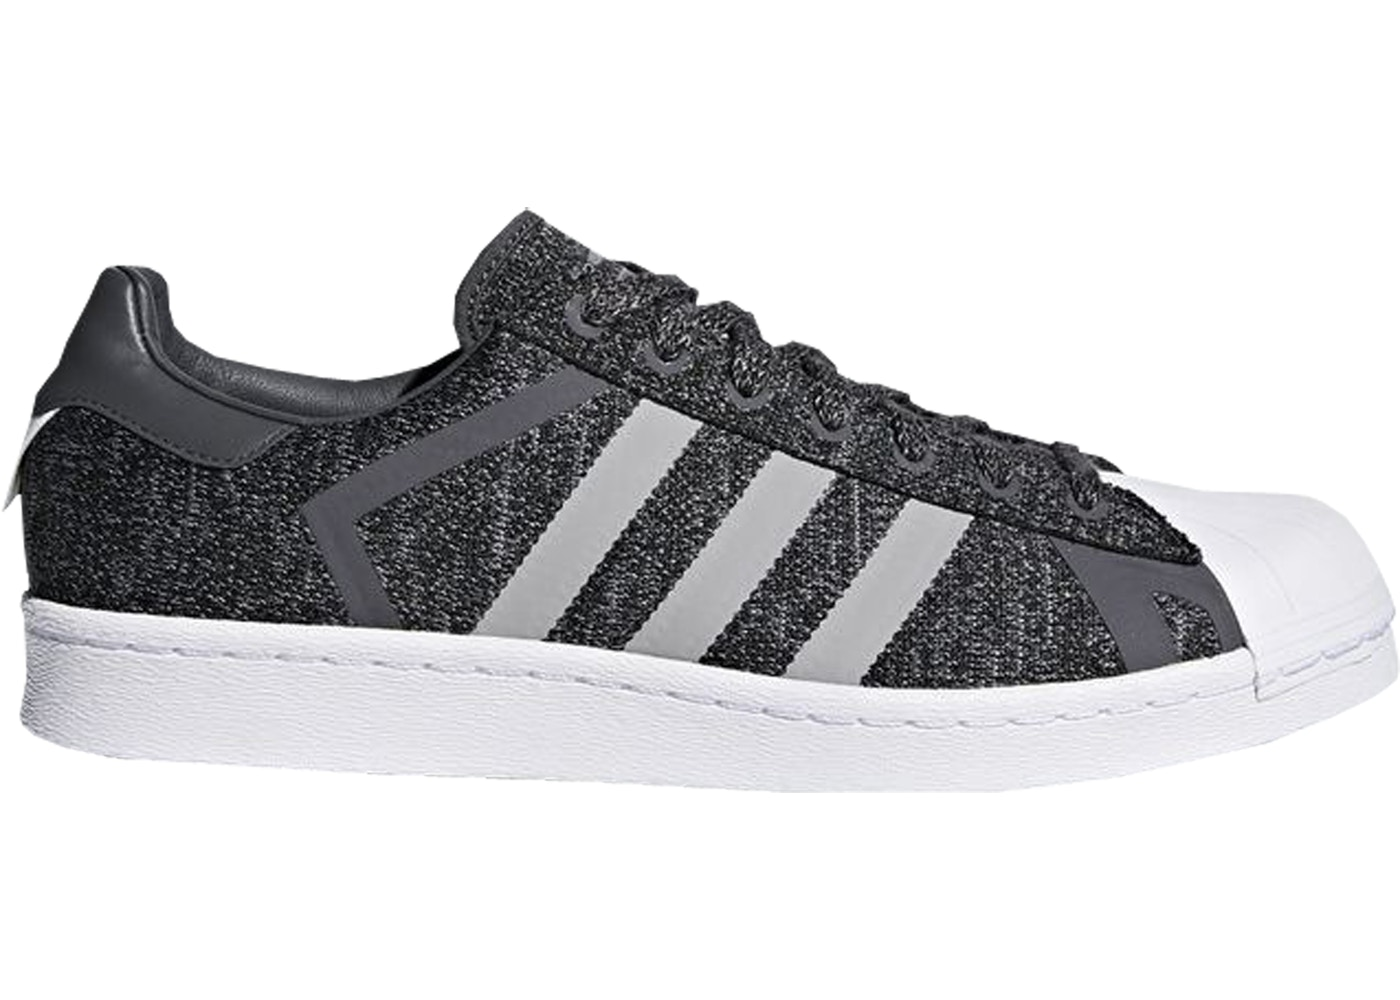 f3c968f5 adidas Superstar White Mountaineering Core Black - AQ0351